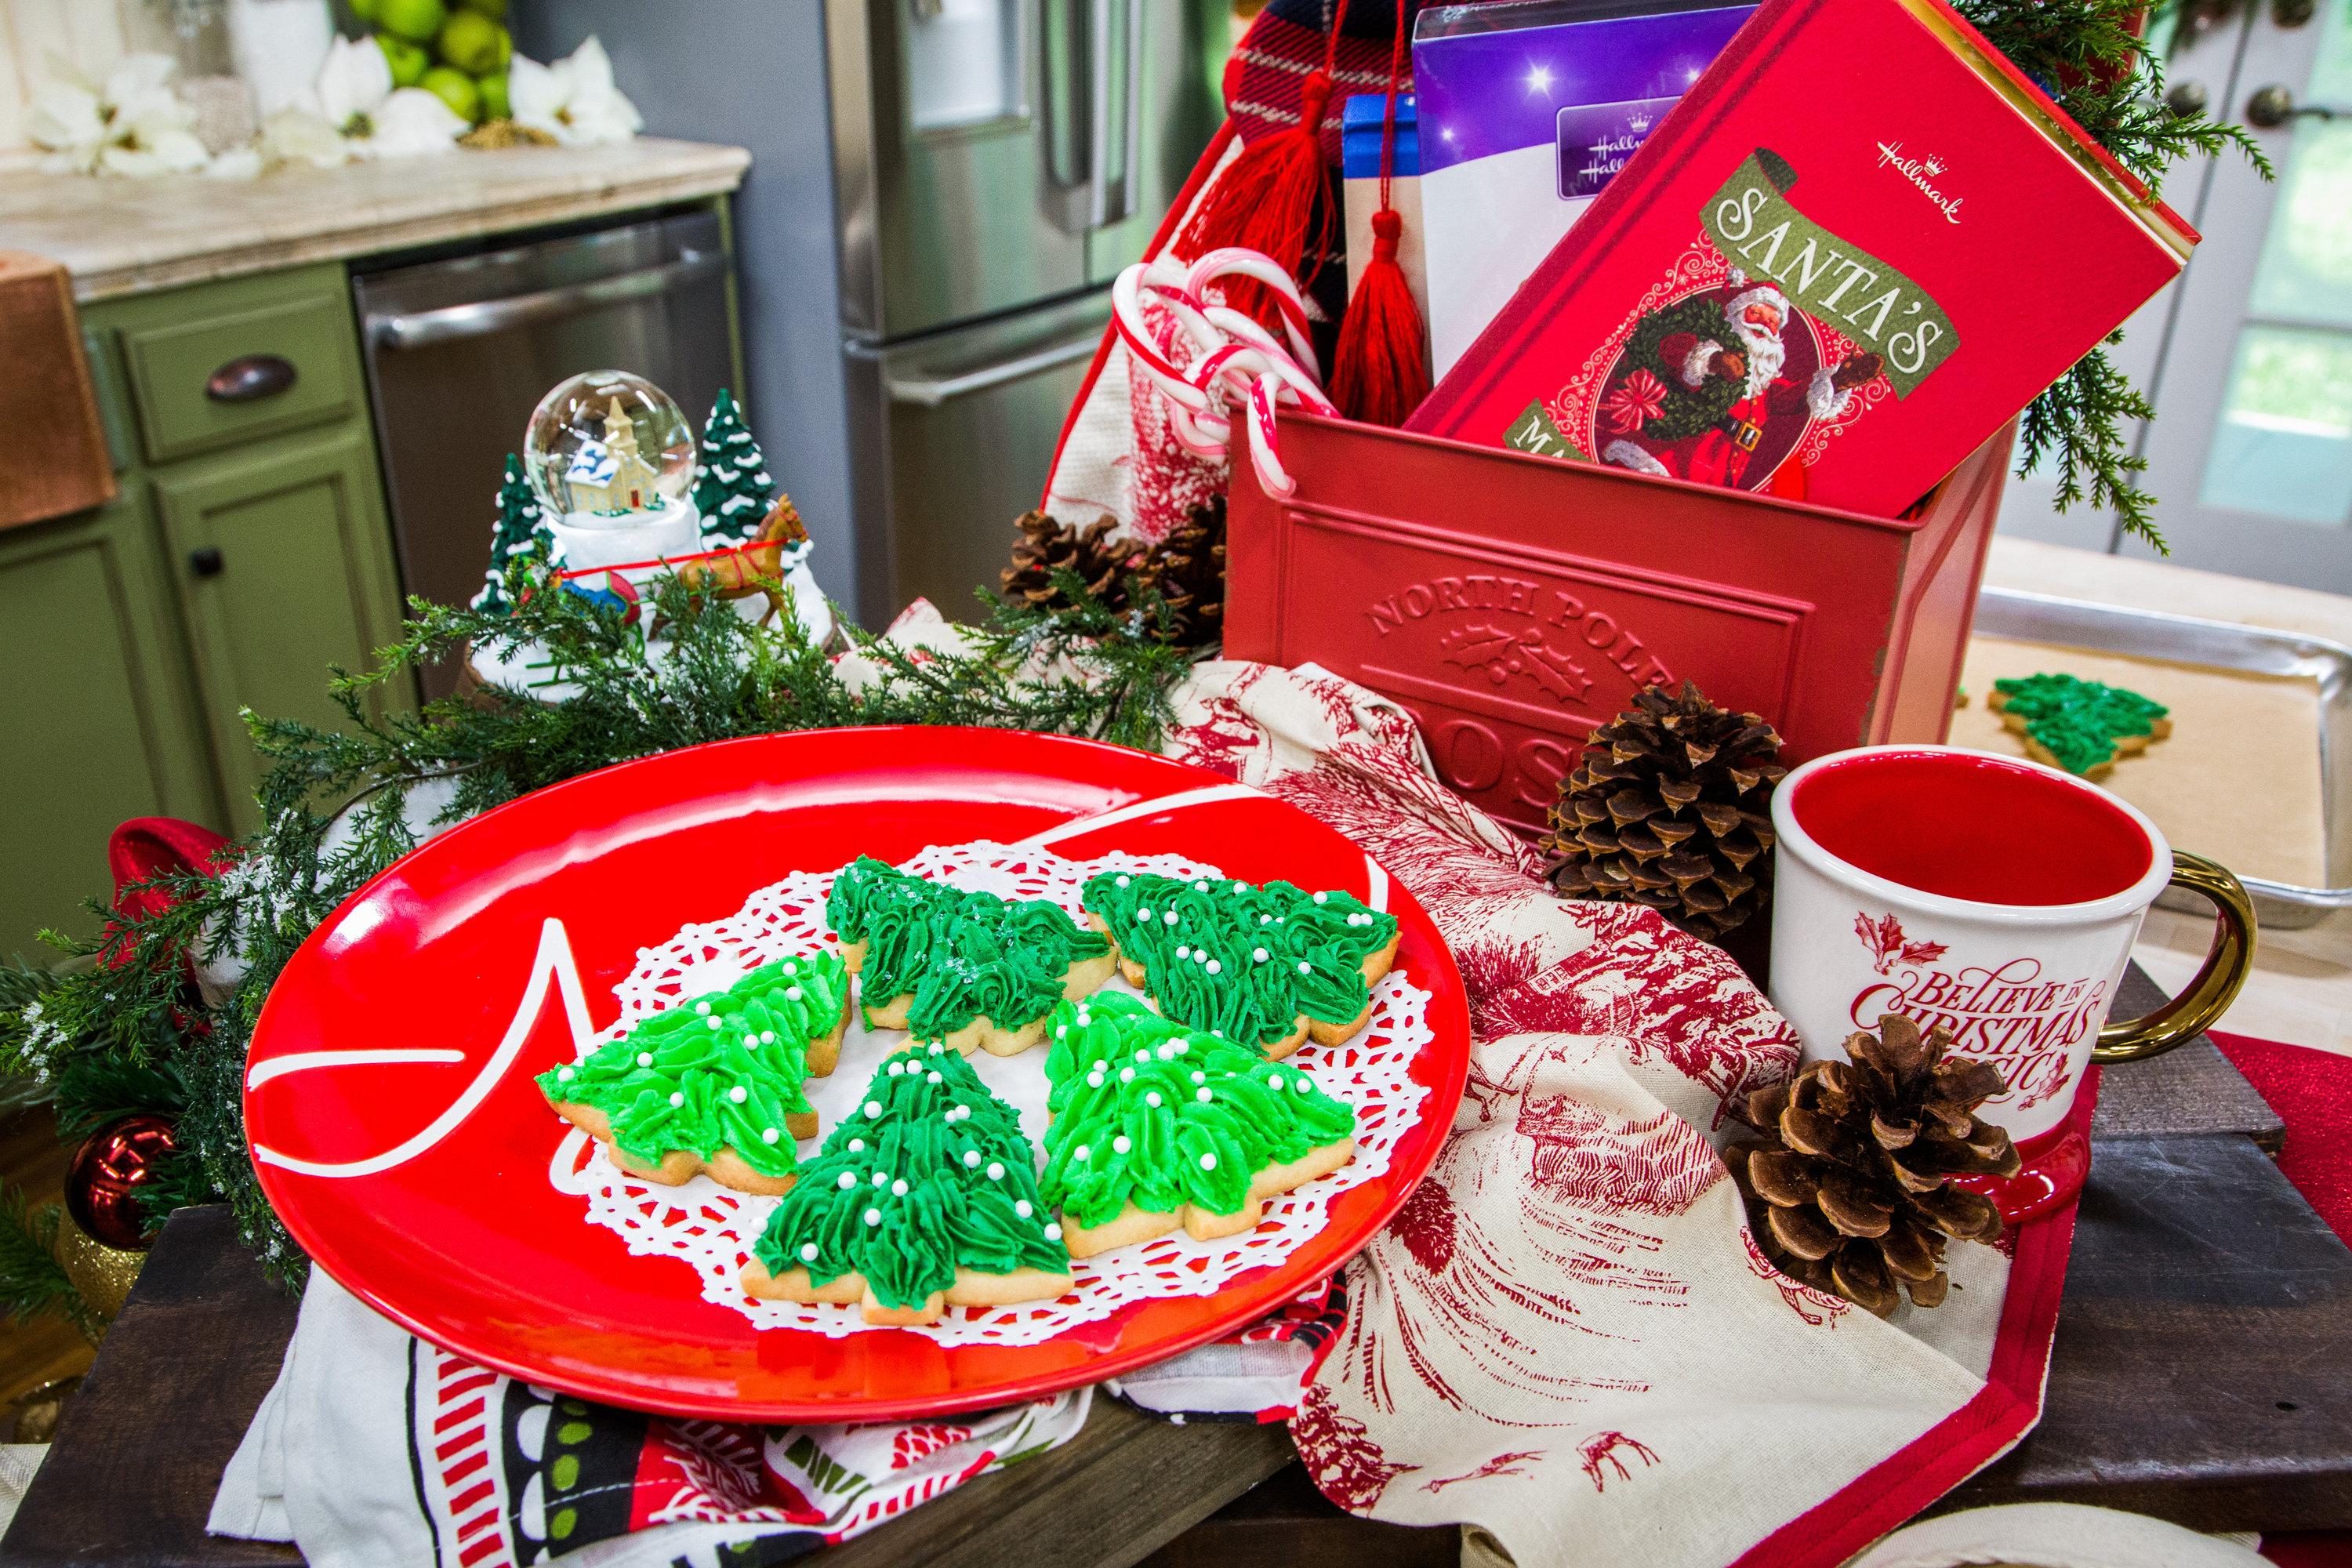 Recipes - Vermont Christmas Card Cookies | Hallmark Channel